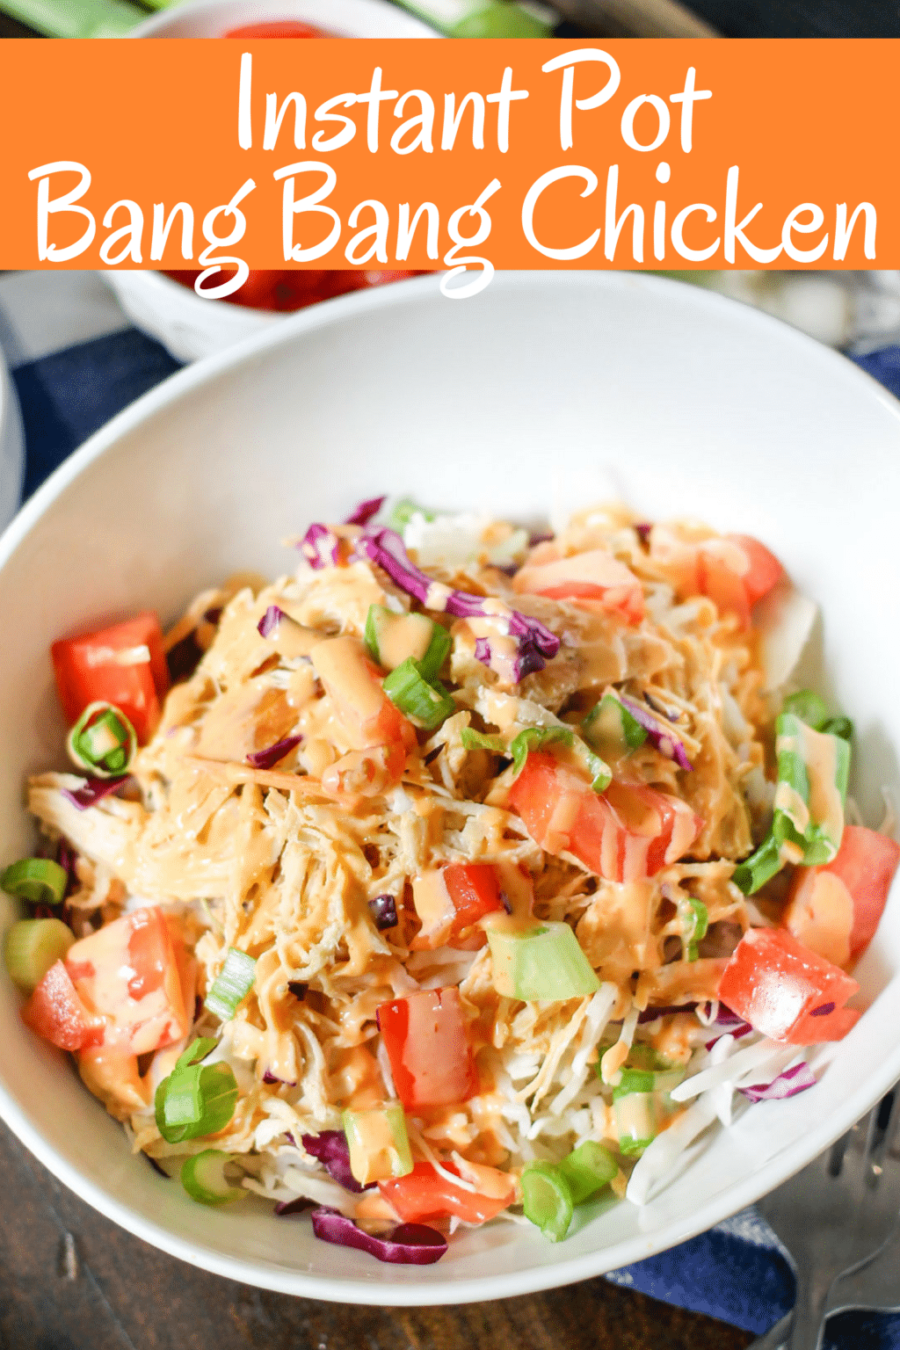 Instant Pot Bang Bang Chicken comes together in minutes and is so delicious! The classic spicy sauce is perfect on shredded chicken which can be used in rice bowls, salads, wraps, or however you want!